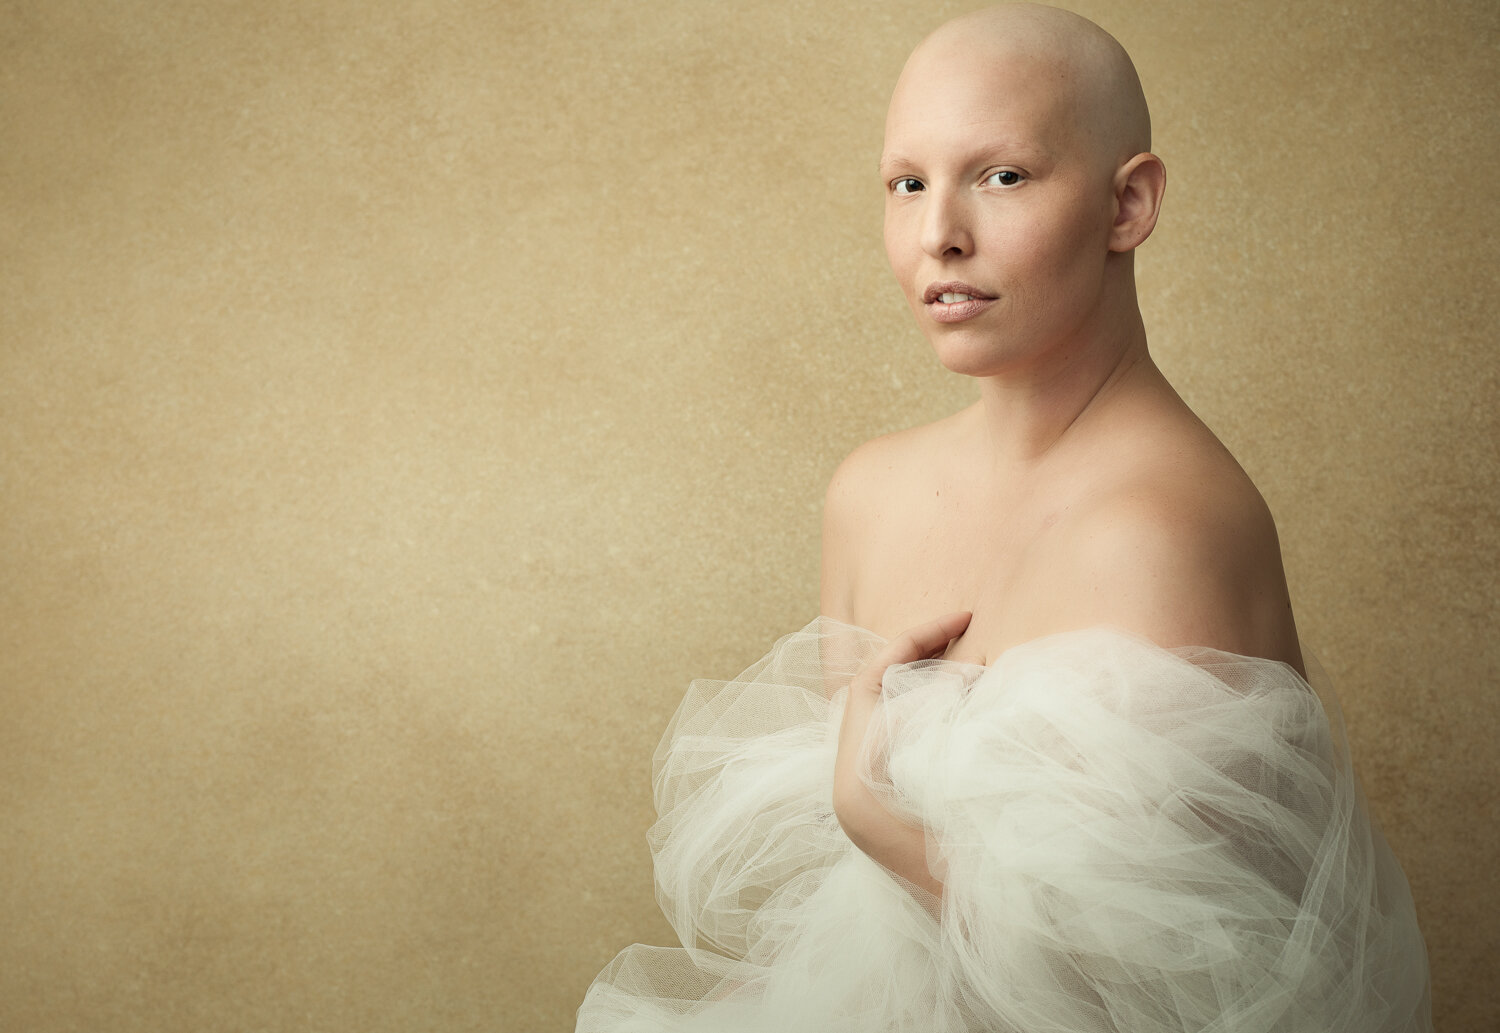 Portrait of a woman with breast cancer who just finished chemotherapy